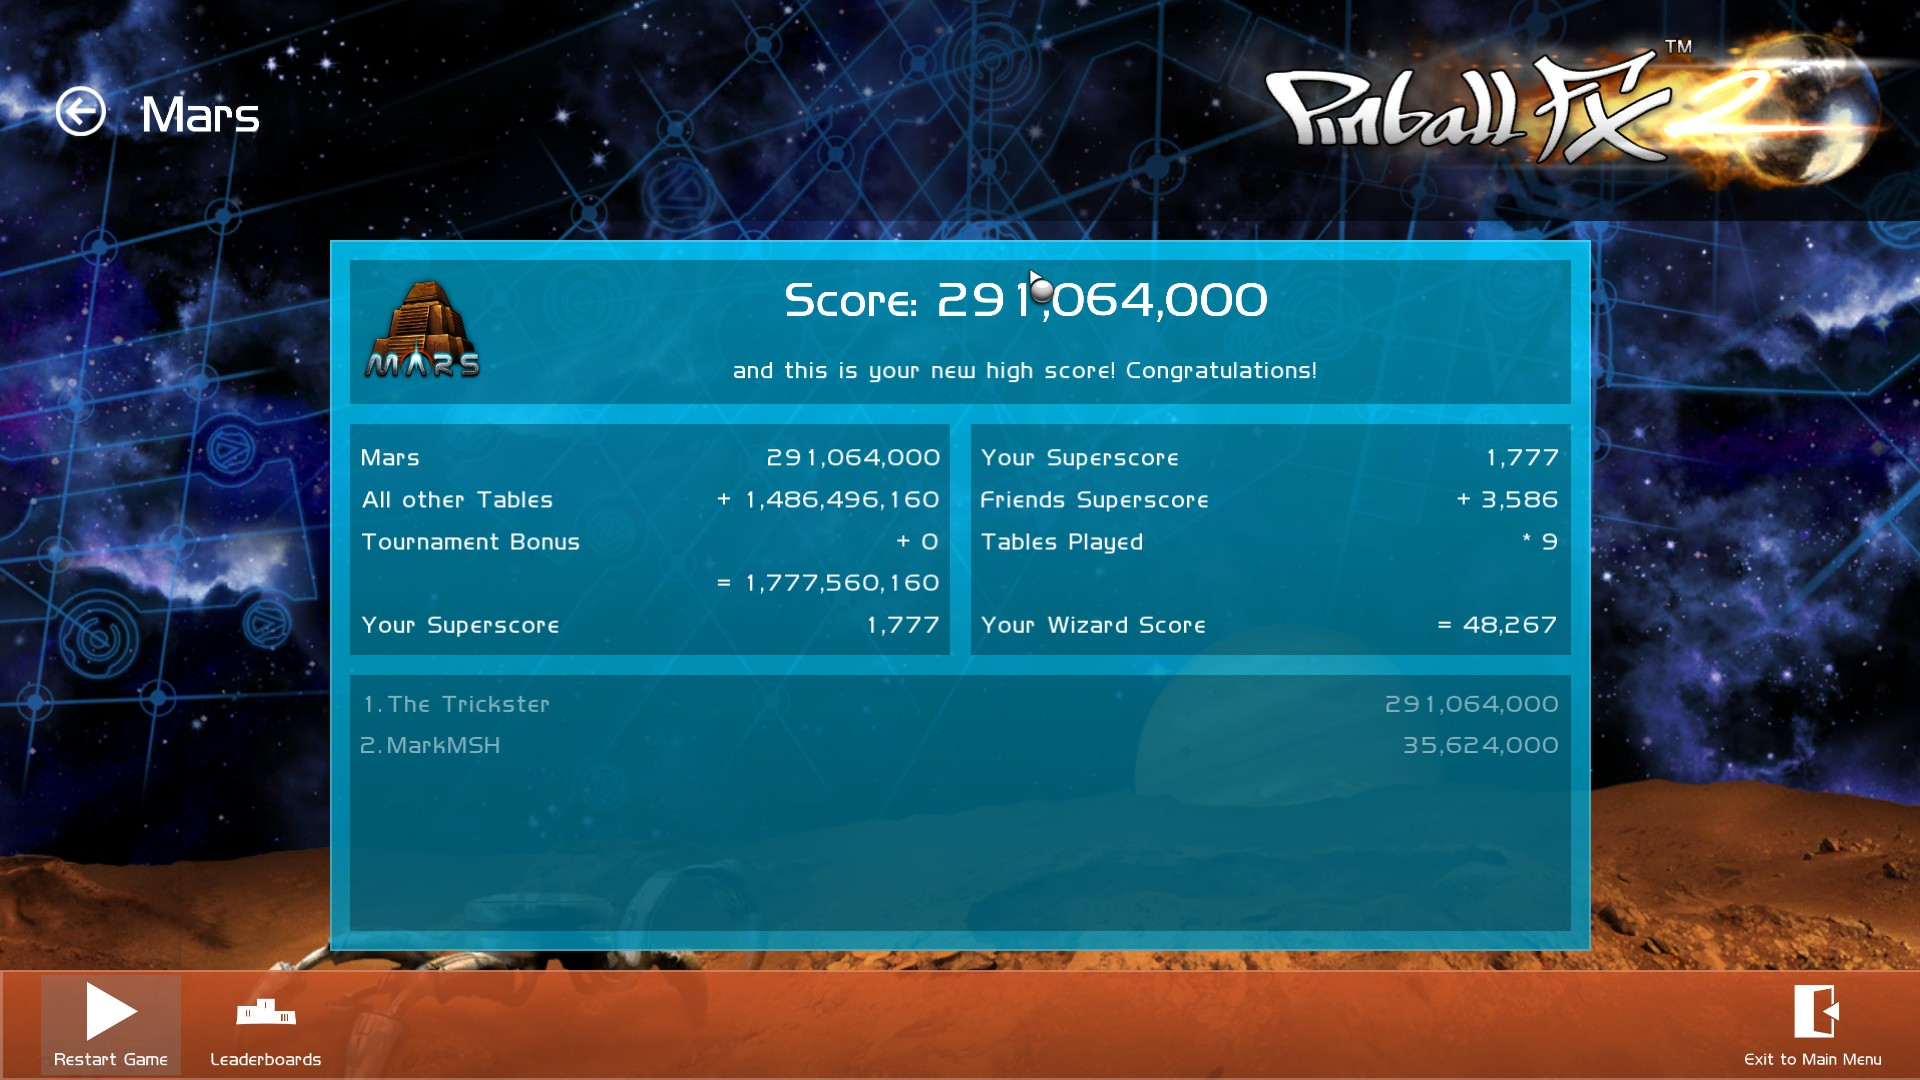 Pinball FX 2: Mars 291,064,000 points